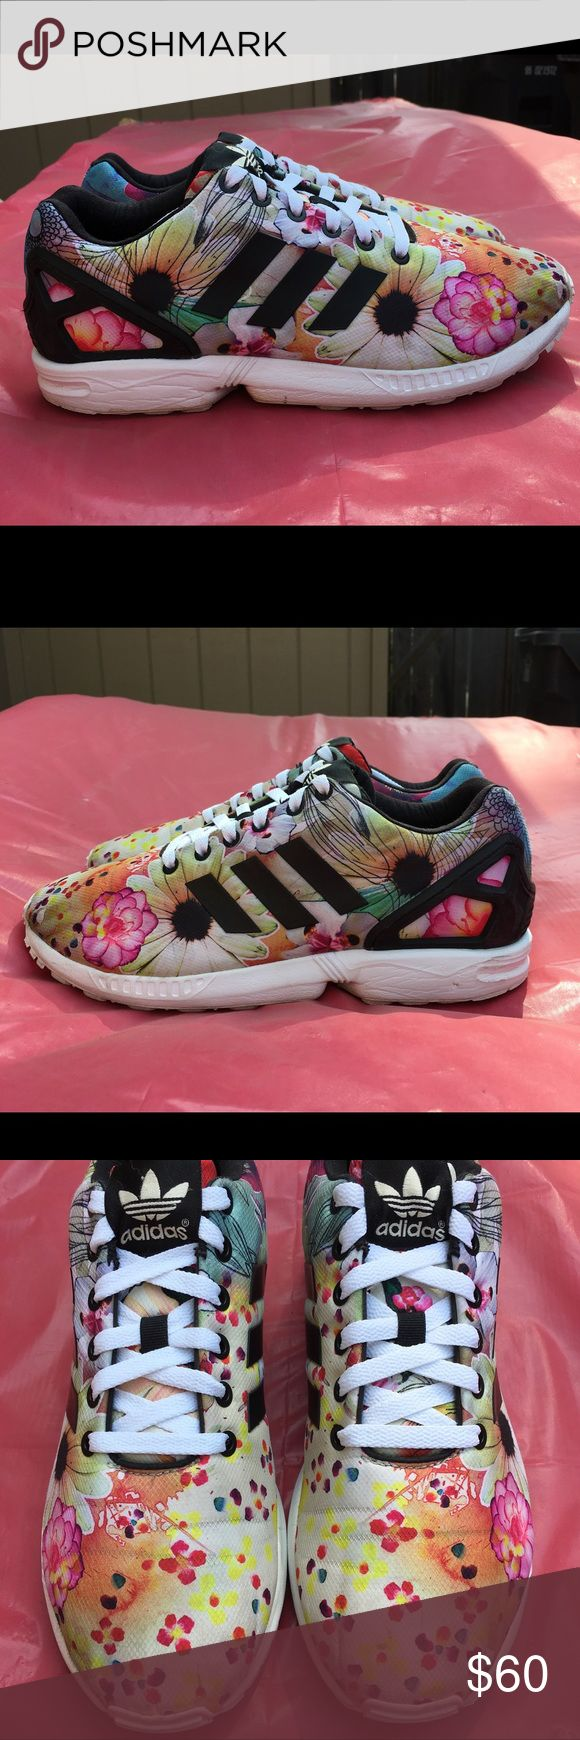 Adidas ZX Flux Floral Adidas Zx Flux Floral , Size 9.5 adidas Shoes Athletic Shoes